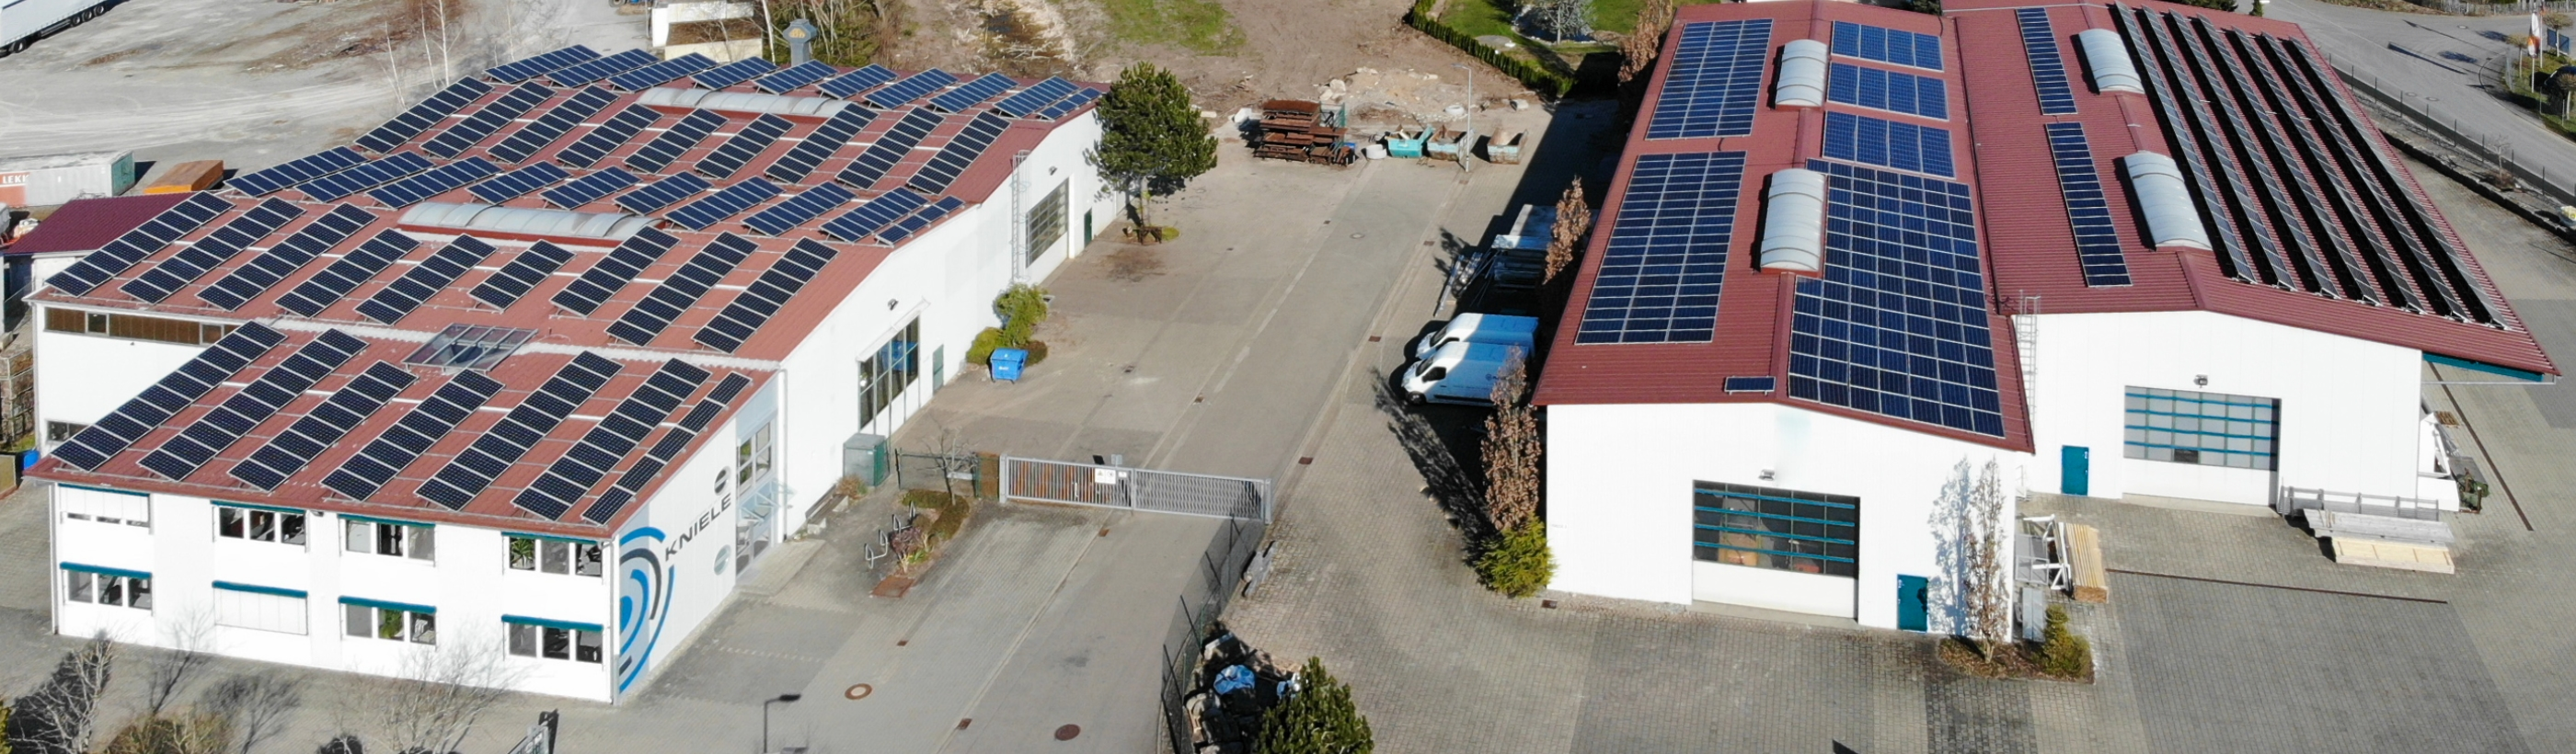 Bird's eye view of Kniele's production halls with PV system on the roof, Kniele logo at the administration building.